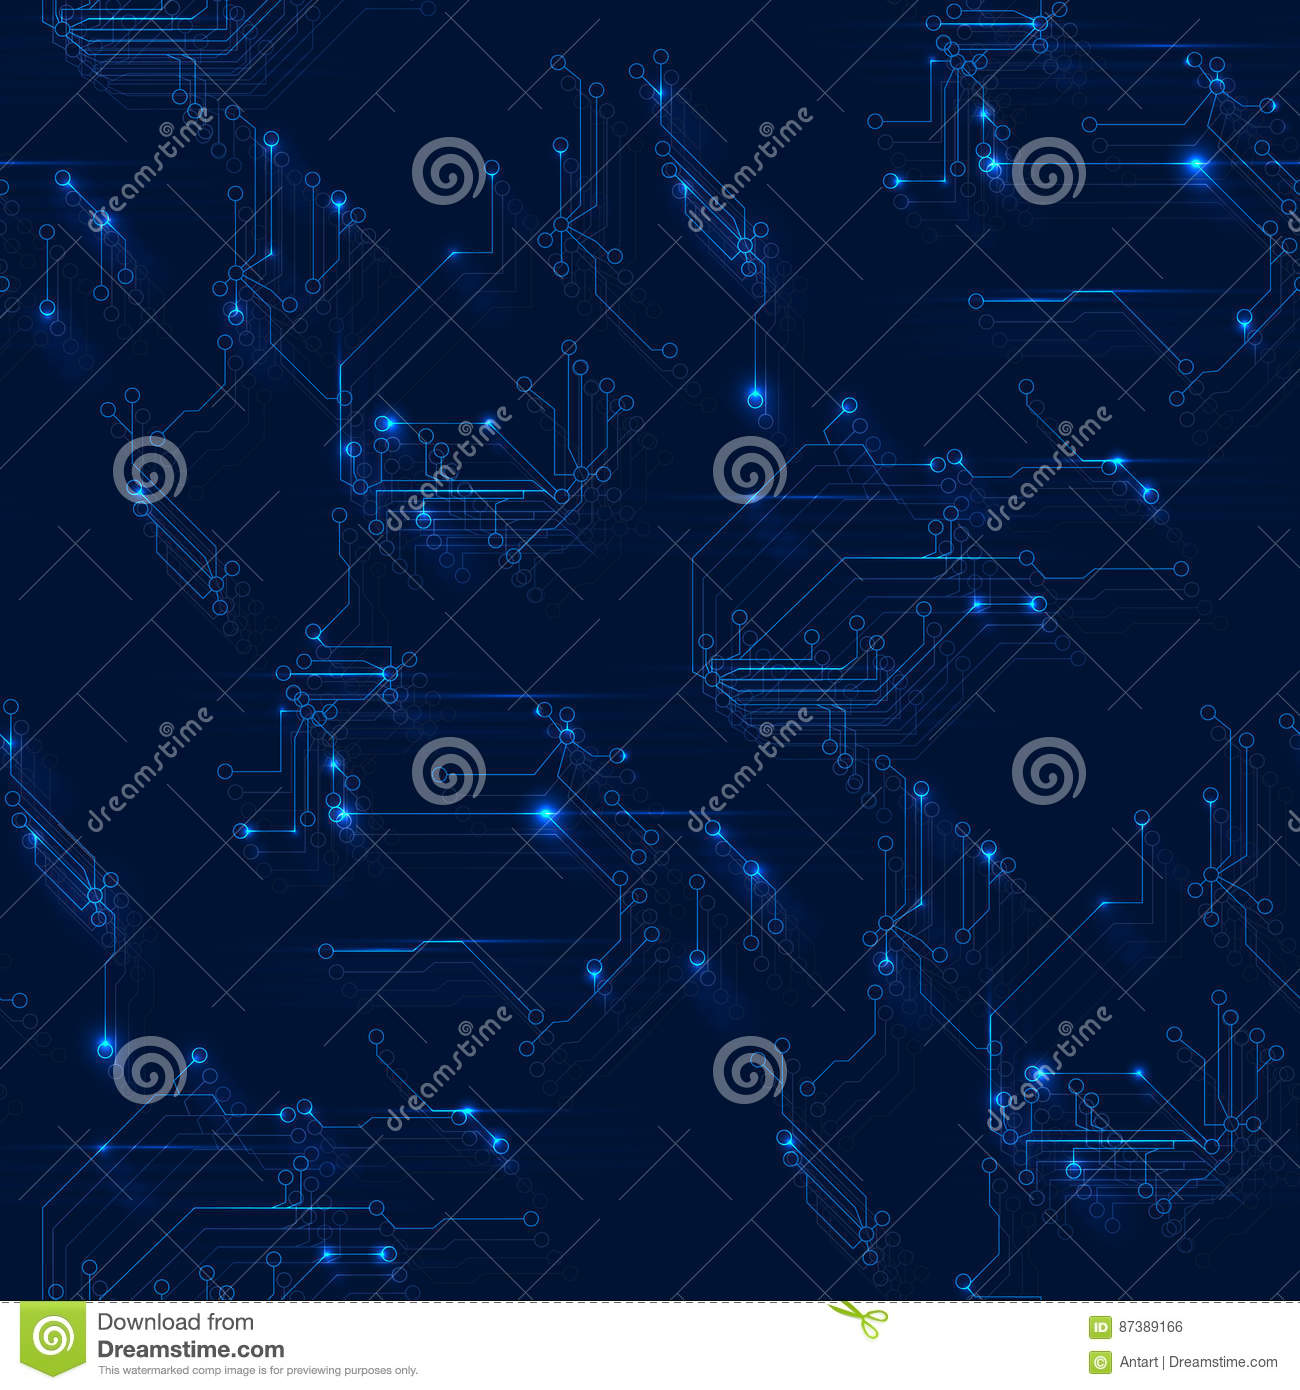 Seamless pattern of abstract vector background with high tech circuit board elements